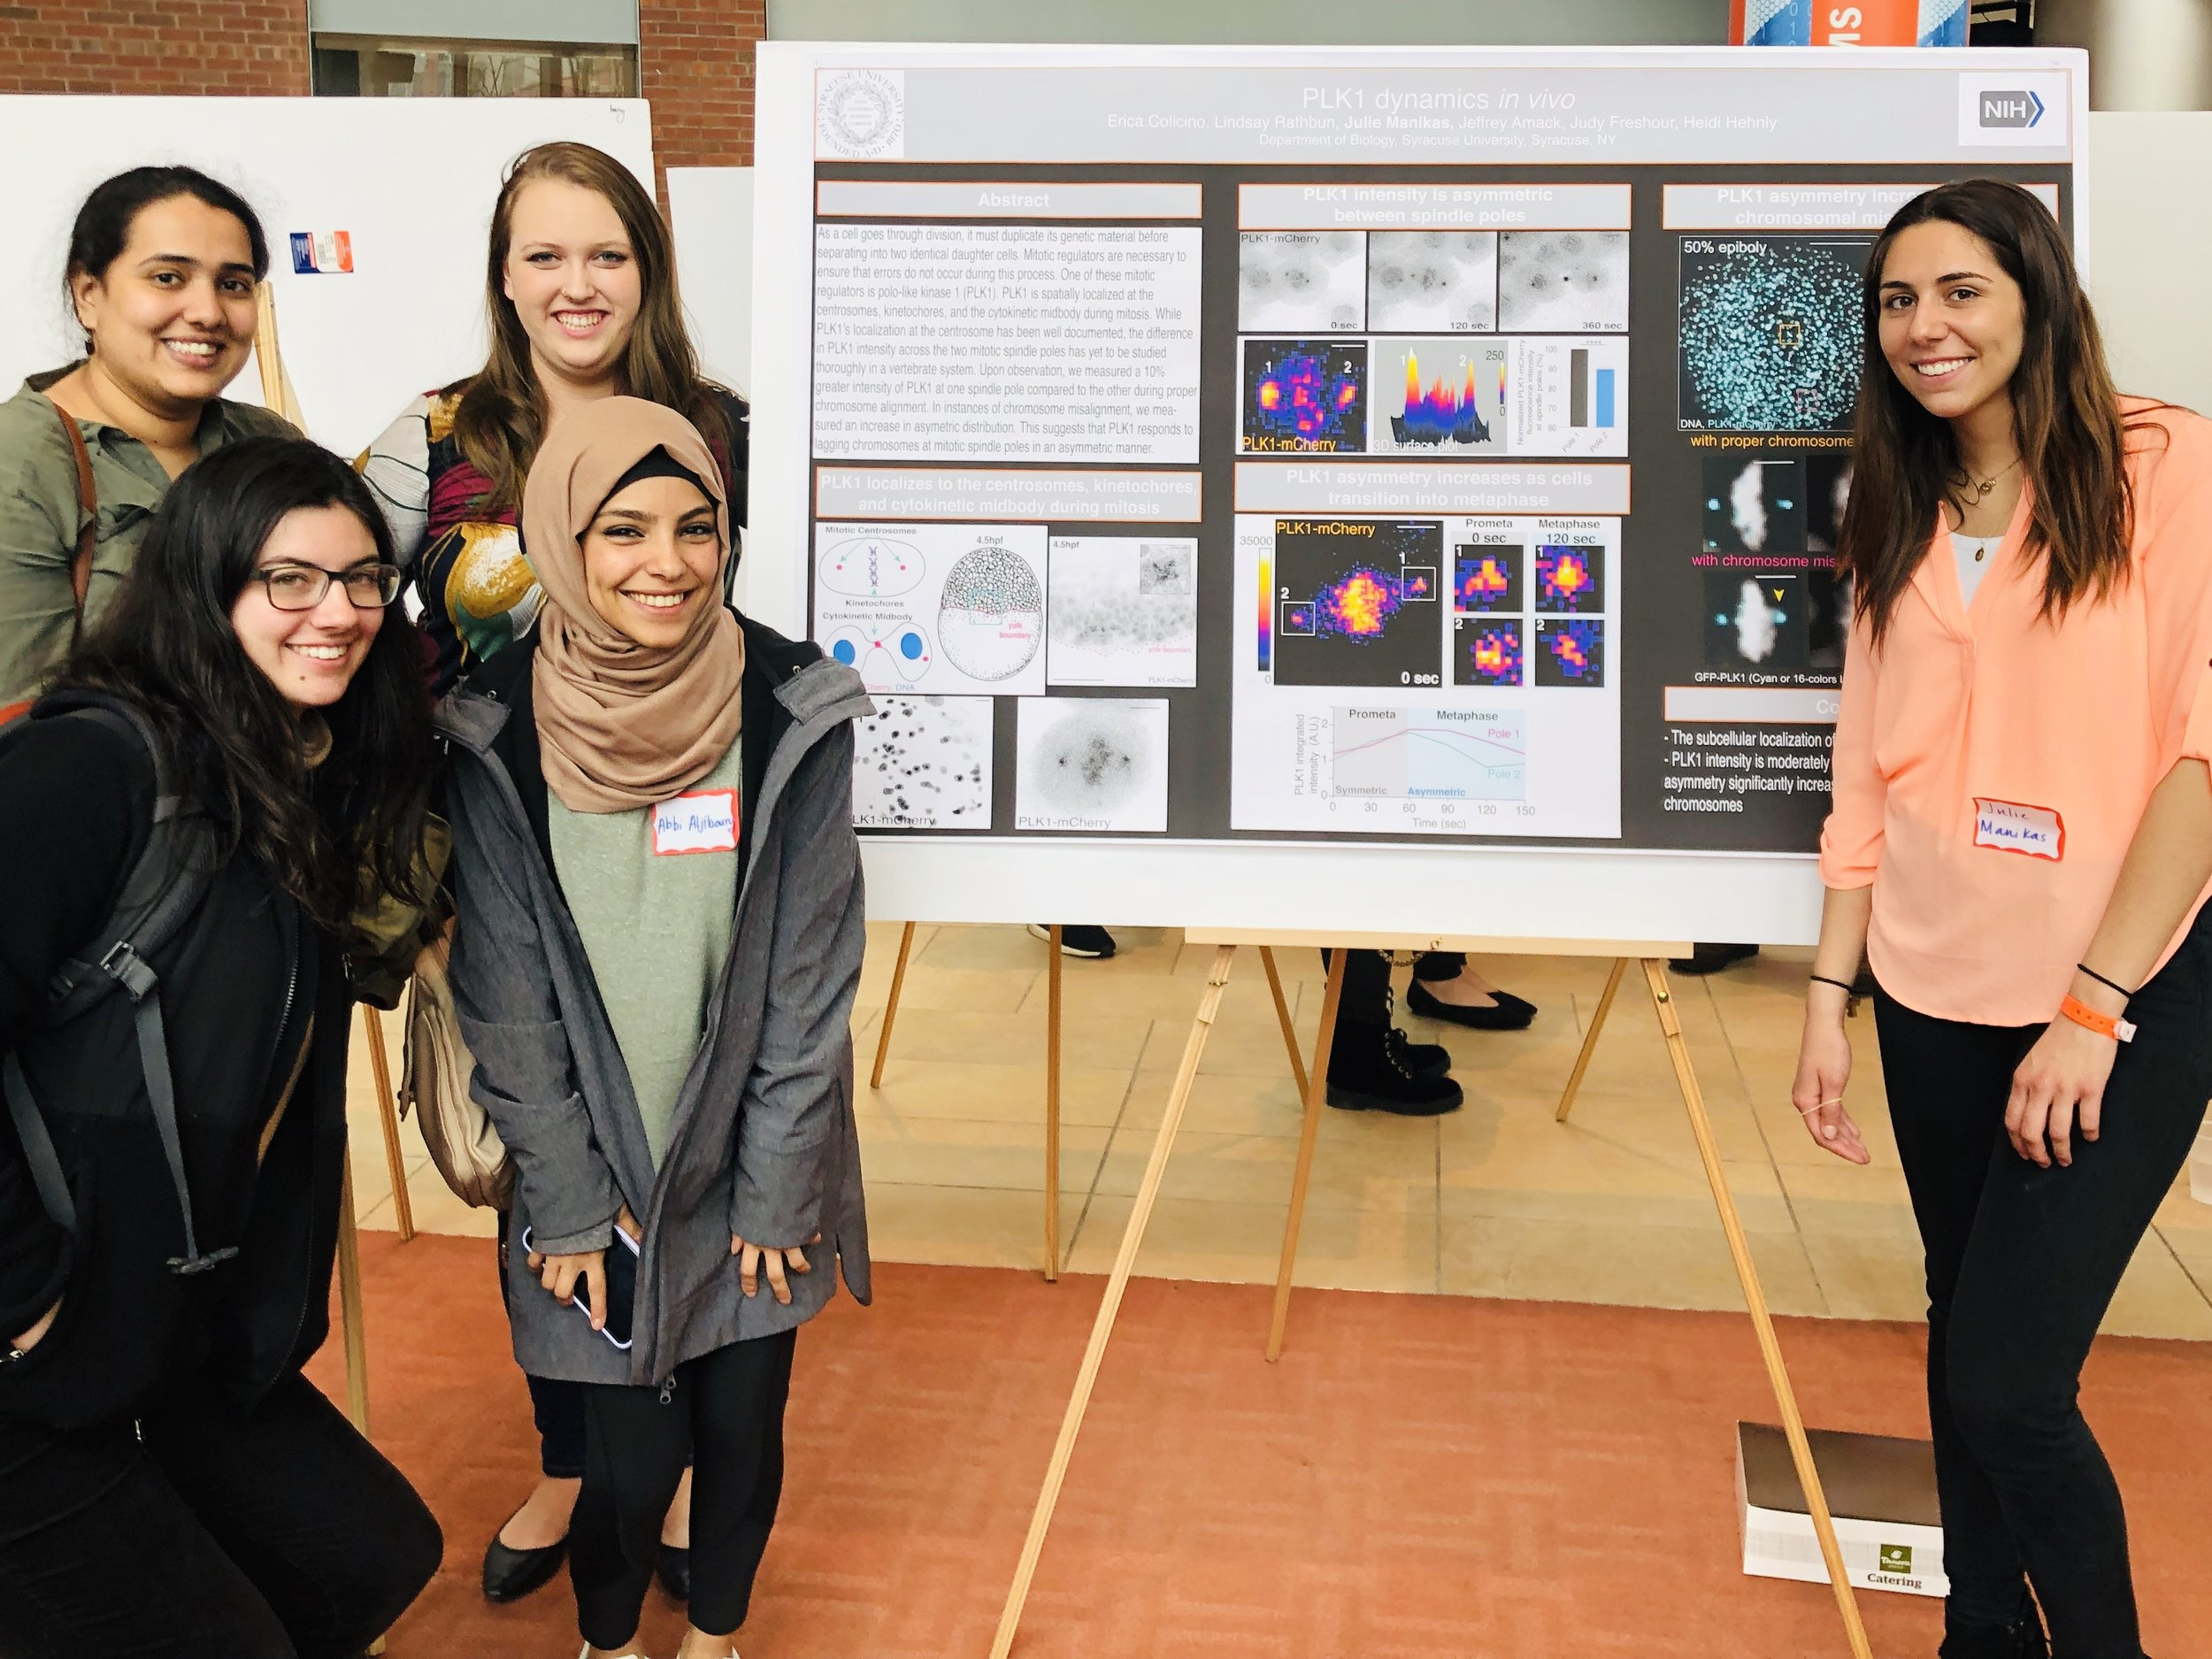 Shown are Nikhila, Erin, Jess, and Abrar at Julie's poster!